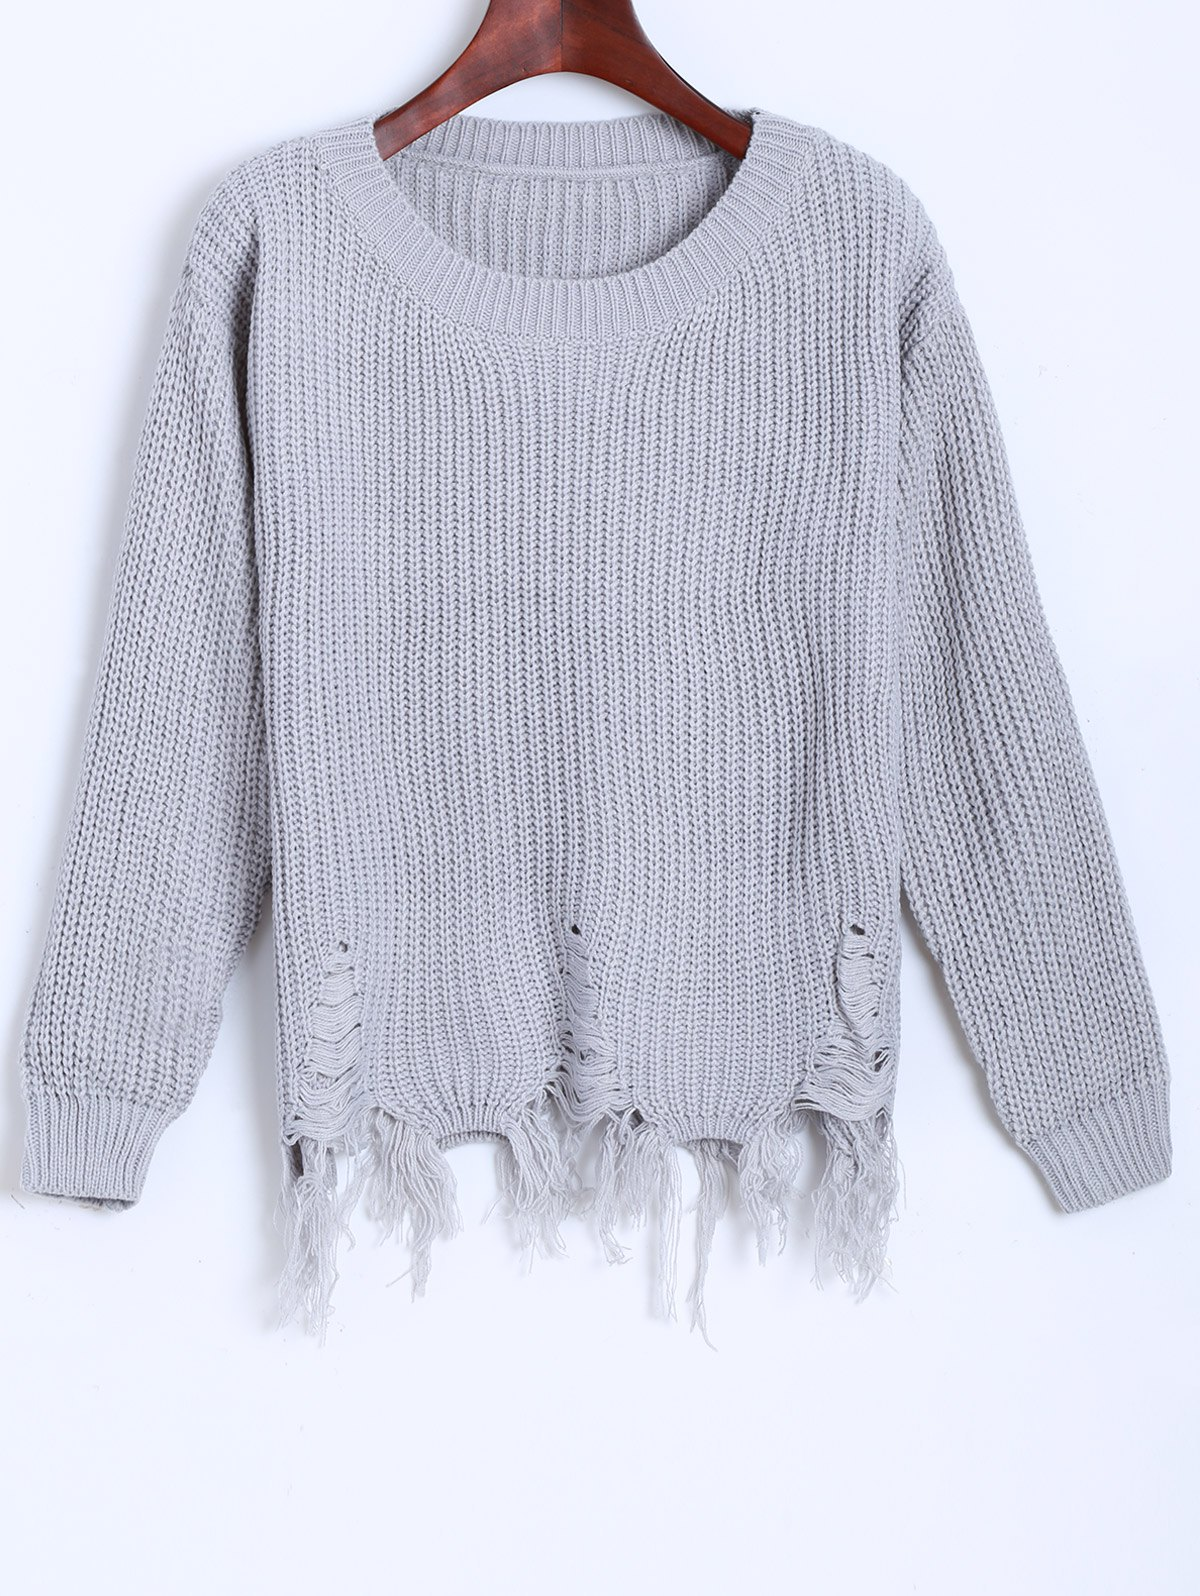 Distressed Fringed Chunky SweaterWomen<br><br><br>Size: ONE SIZE<br>Color: GRAY